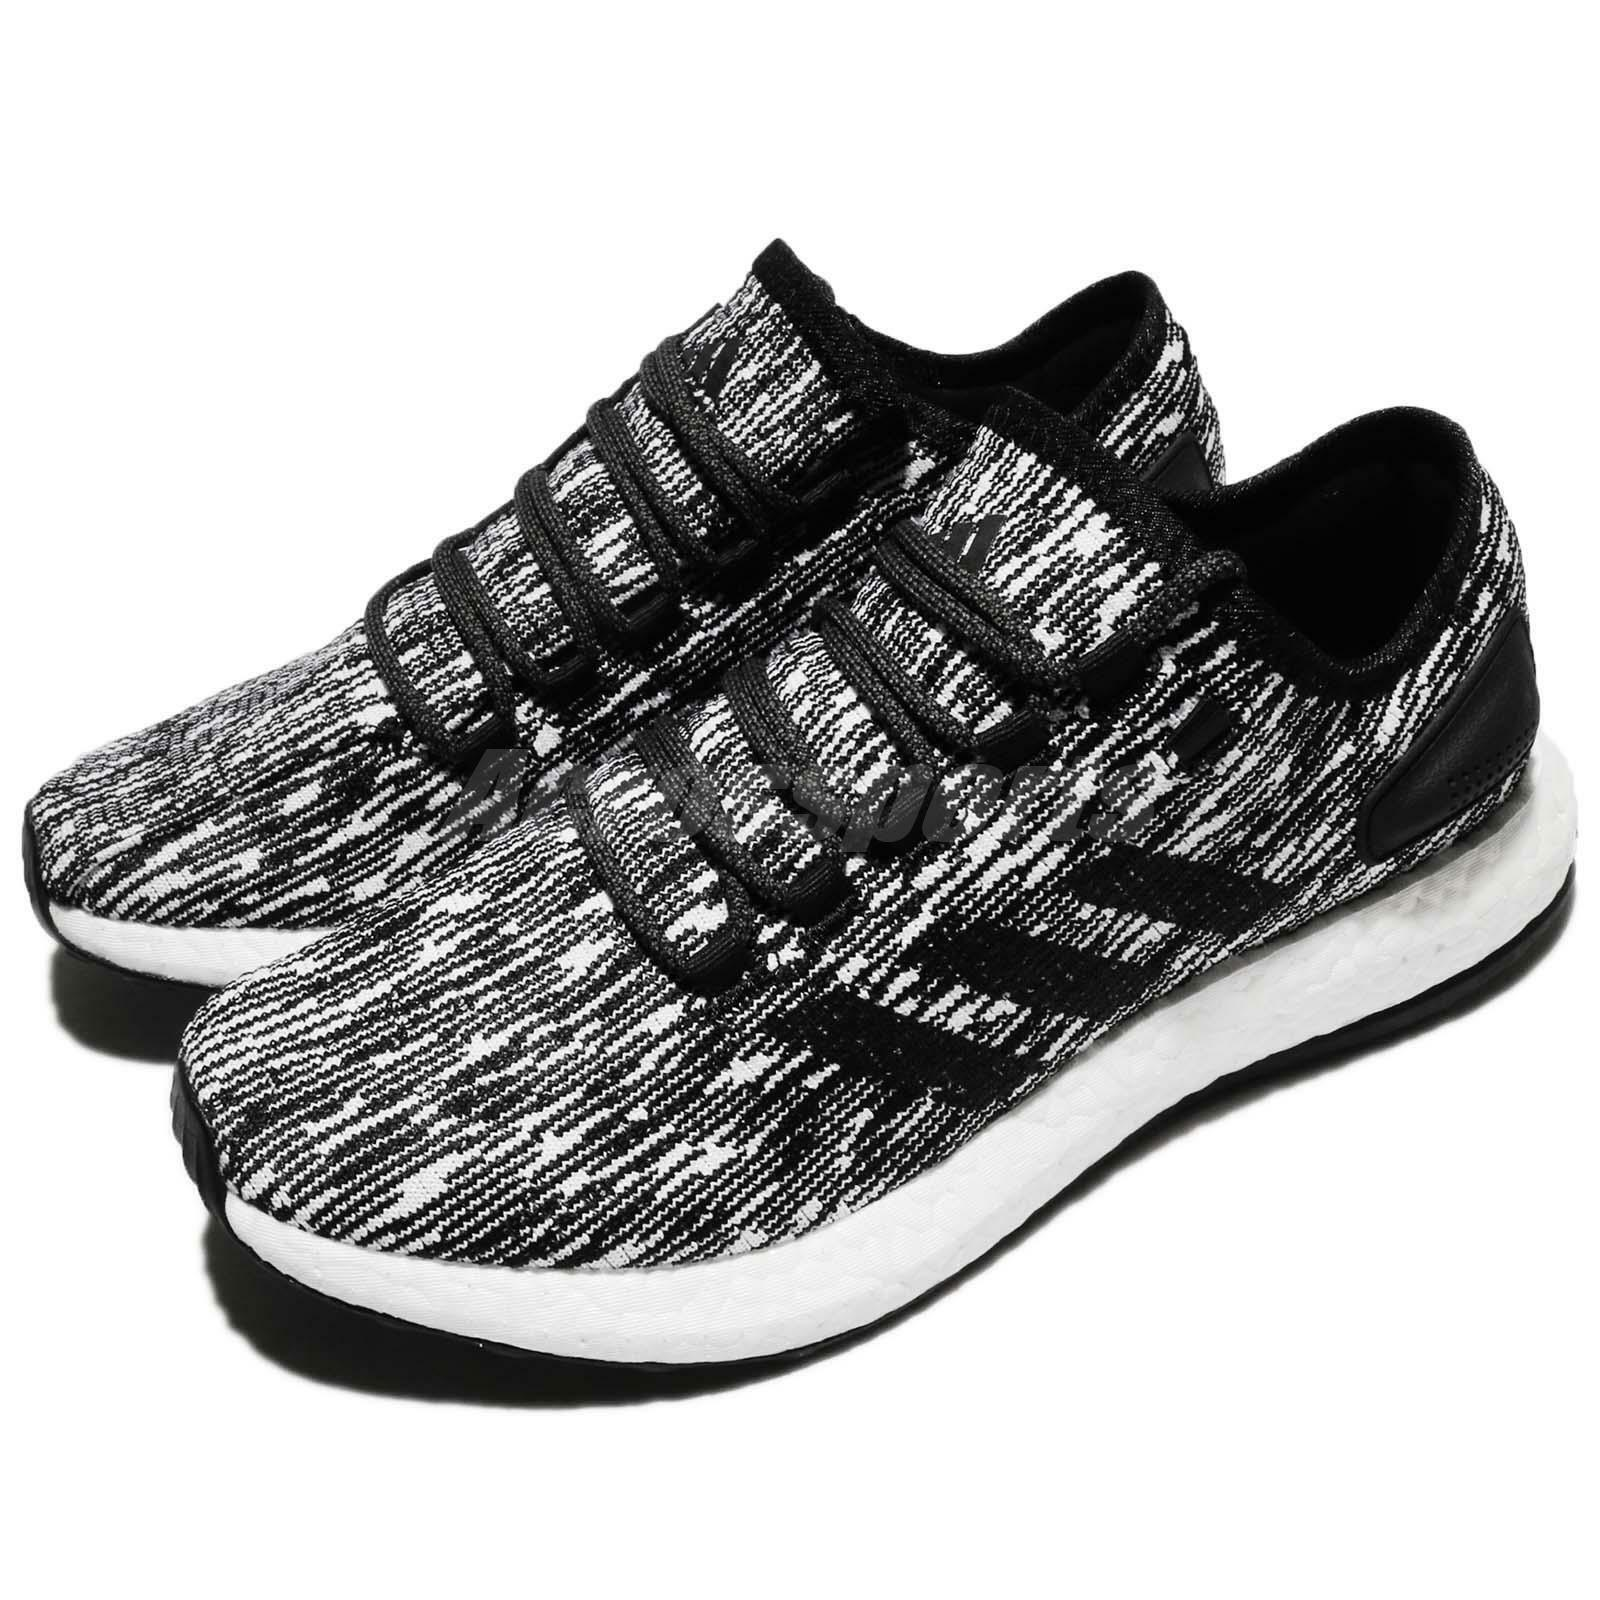 Adidas PureBOOST Black Black Black White Men Running shoes Sneakers  Trainers BB6280 efe5a6 2311df86918